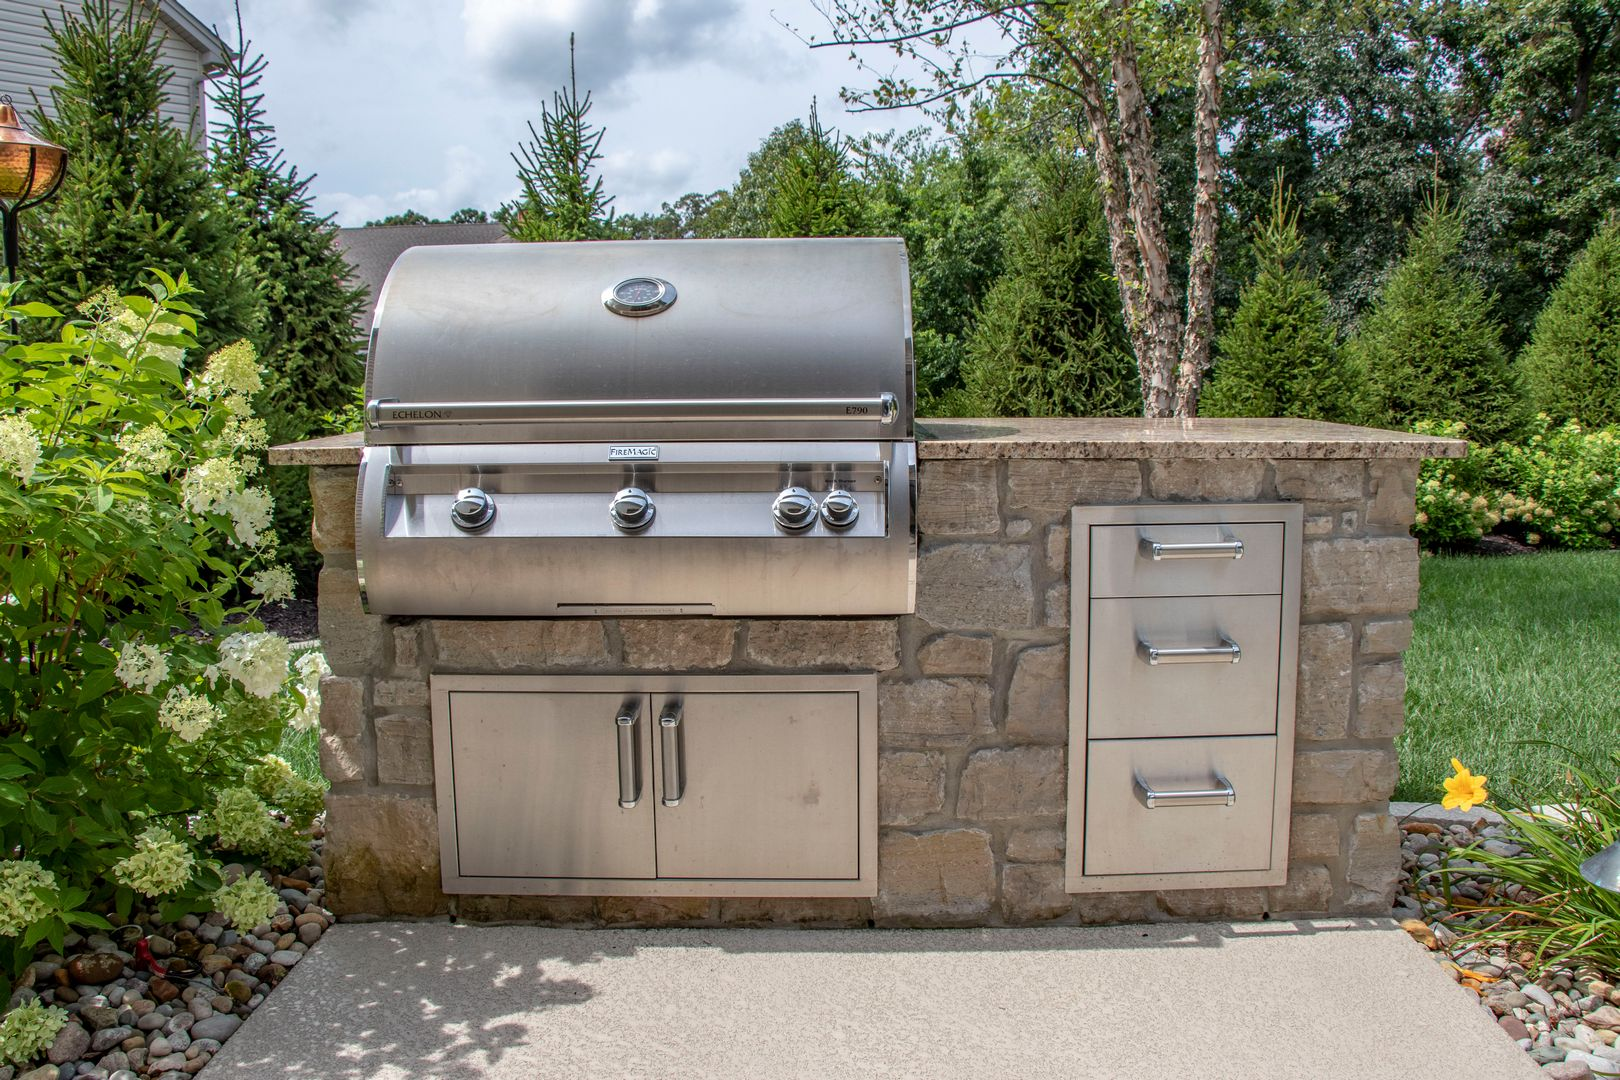 A grilling and storage center located outdoors